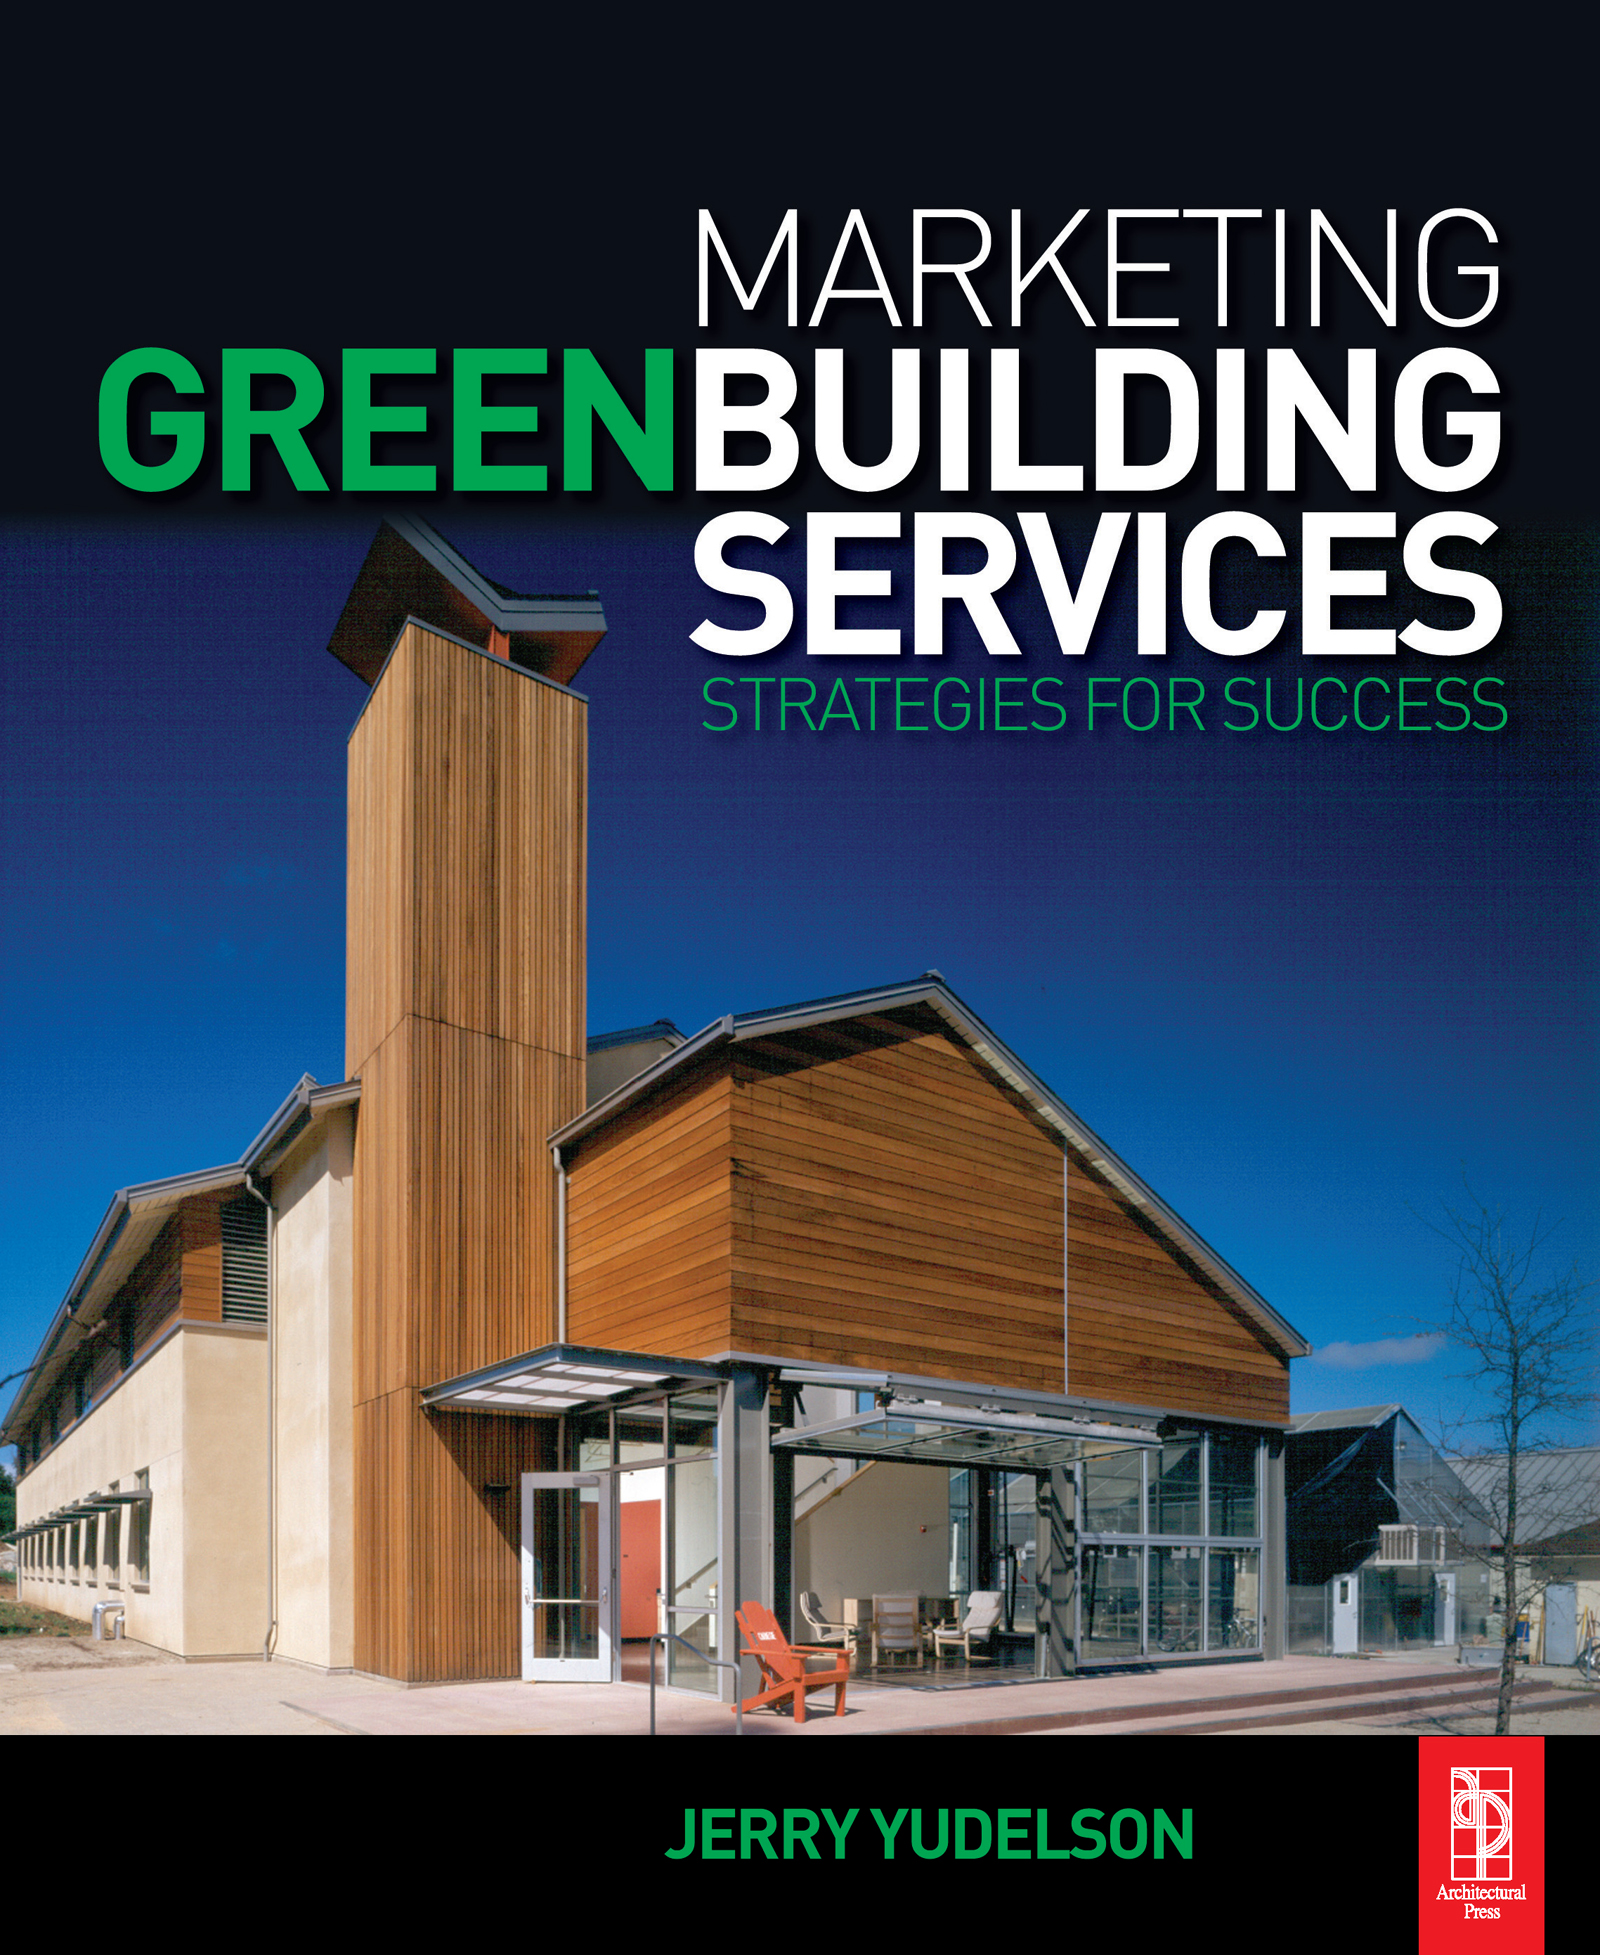 Marketing Green Building Services (Paperback) book cover